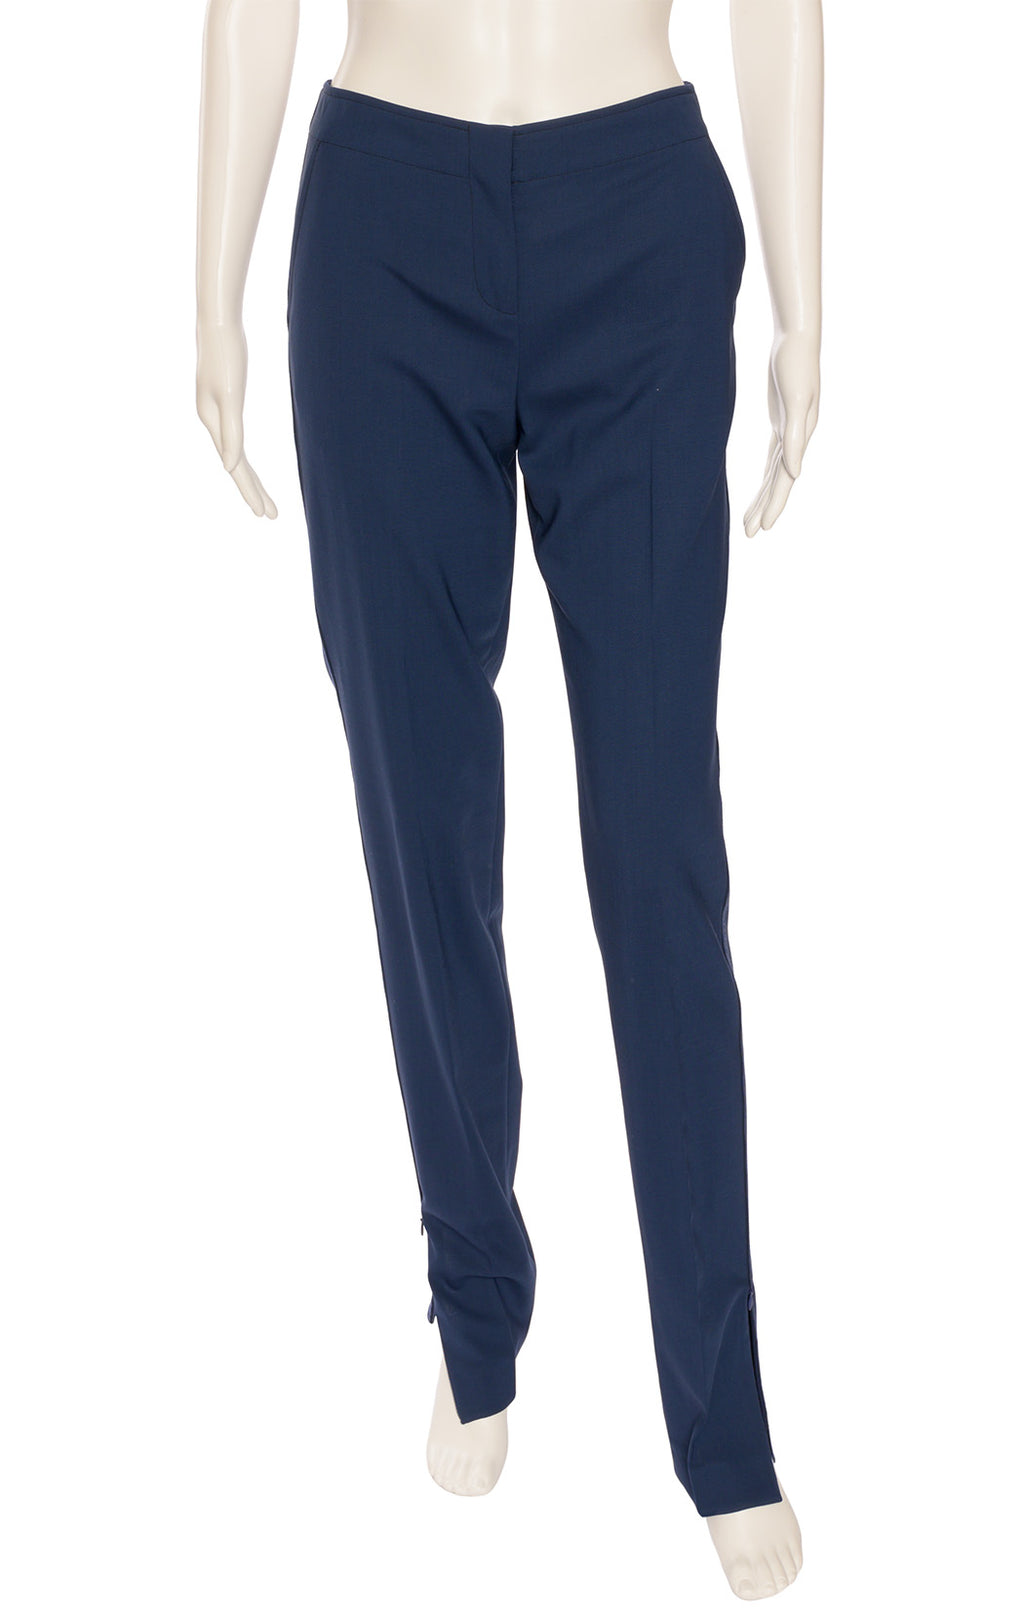 Midnight blue skinny stouter pant style with side pockets, slit back pockets and zippers at hemline